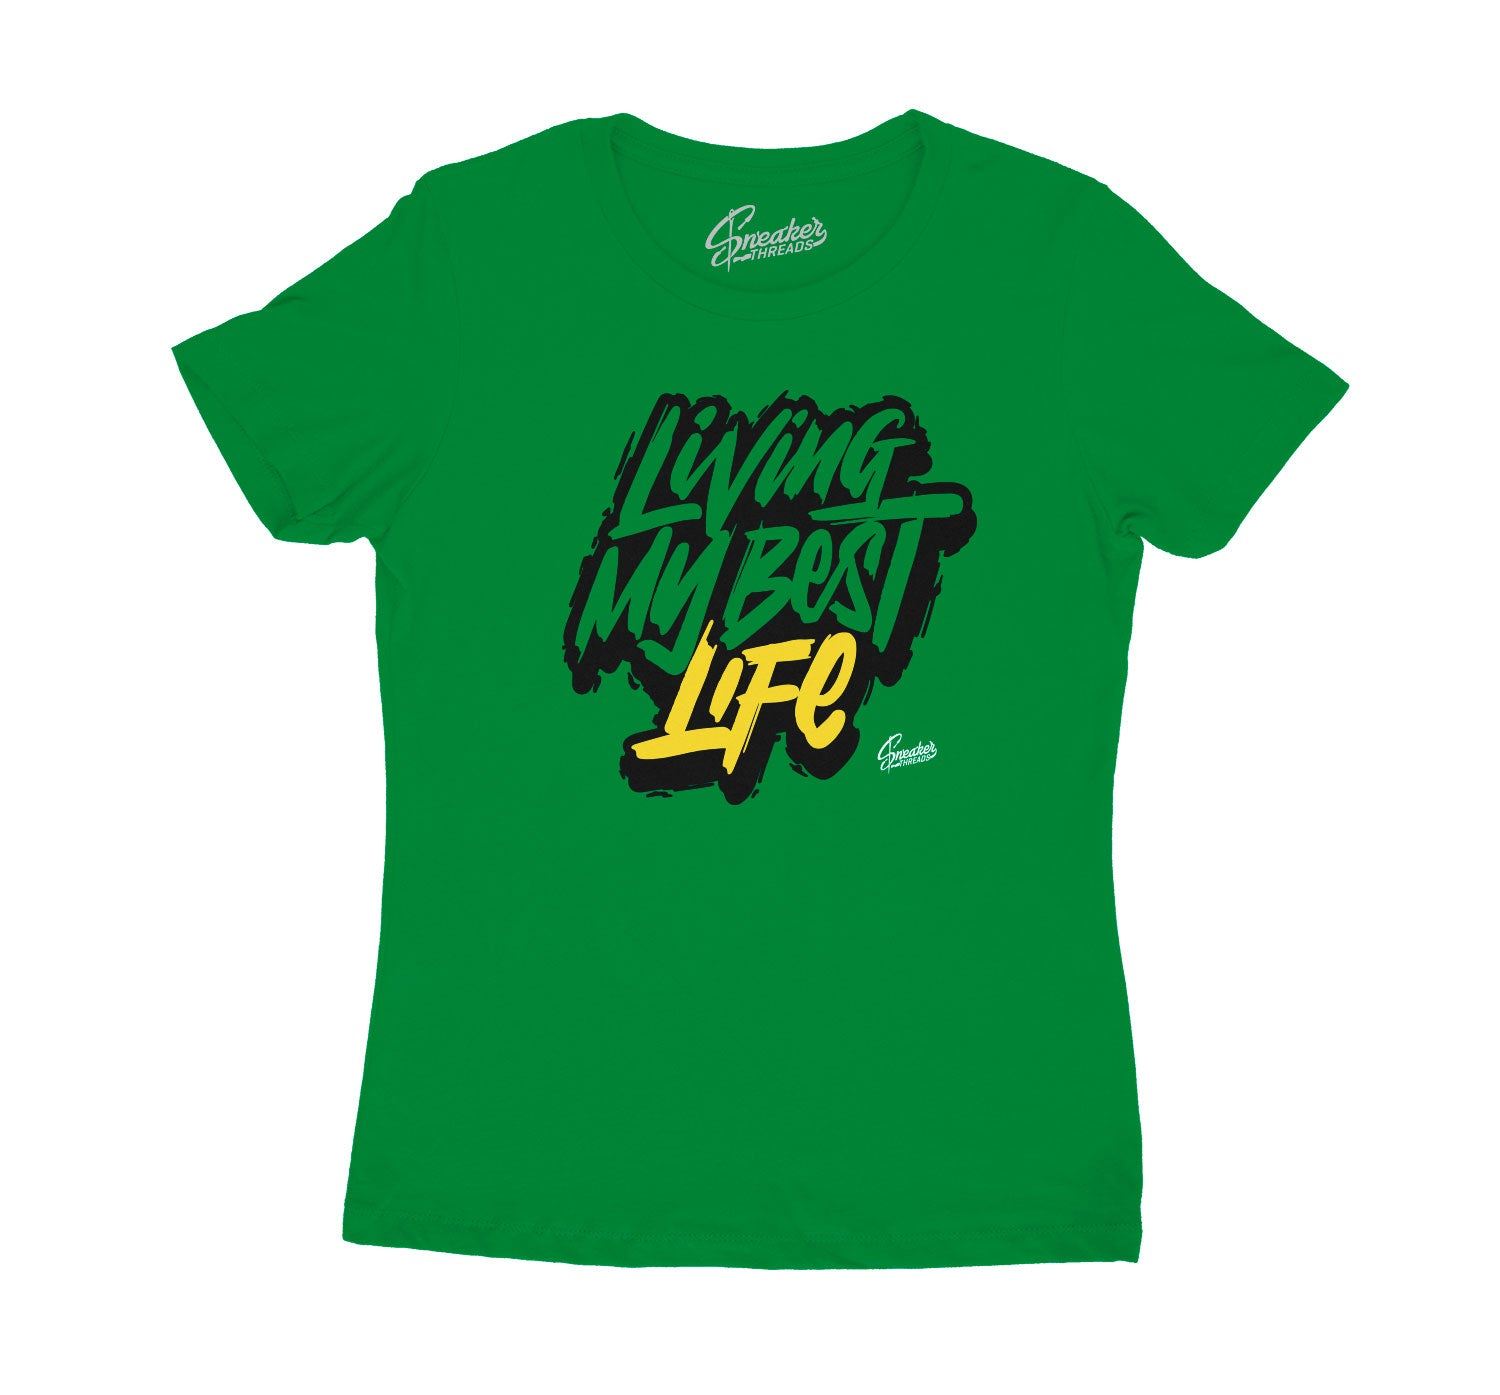 Womens tees made to match the Jordan 10 Seattle sneakers